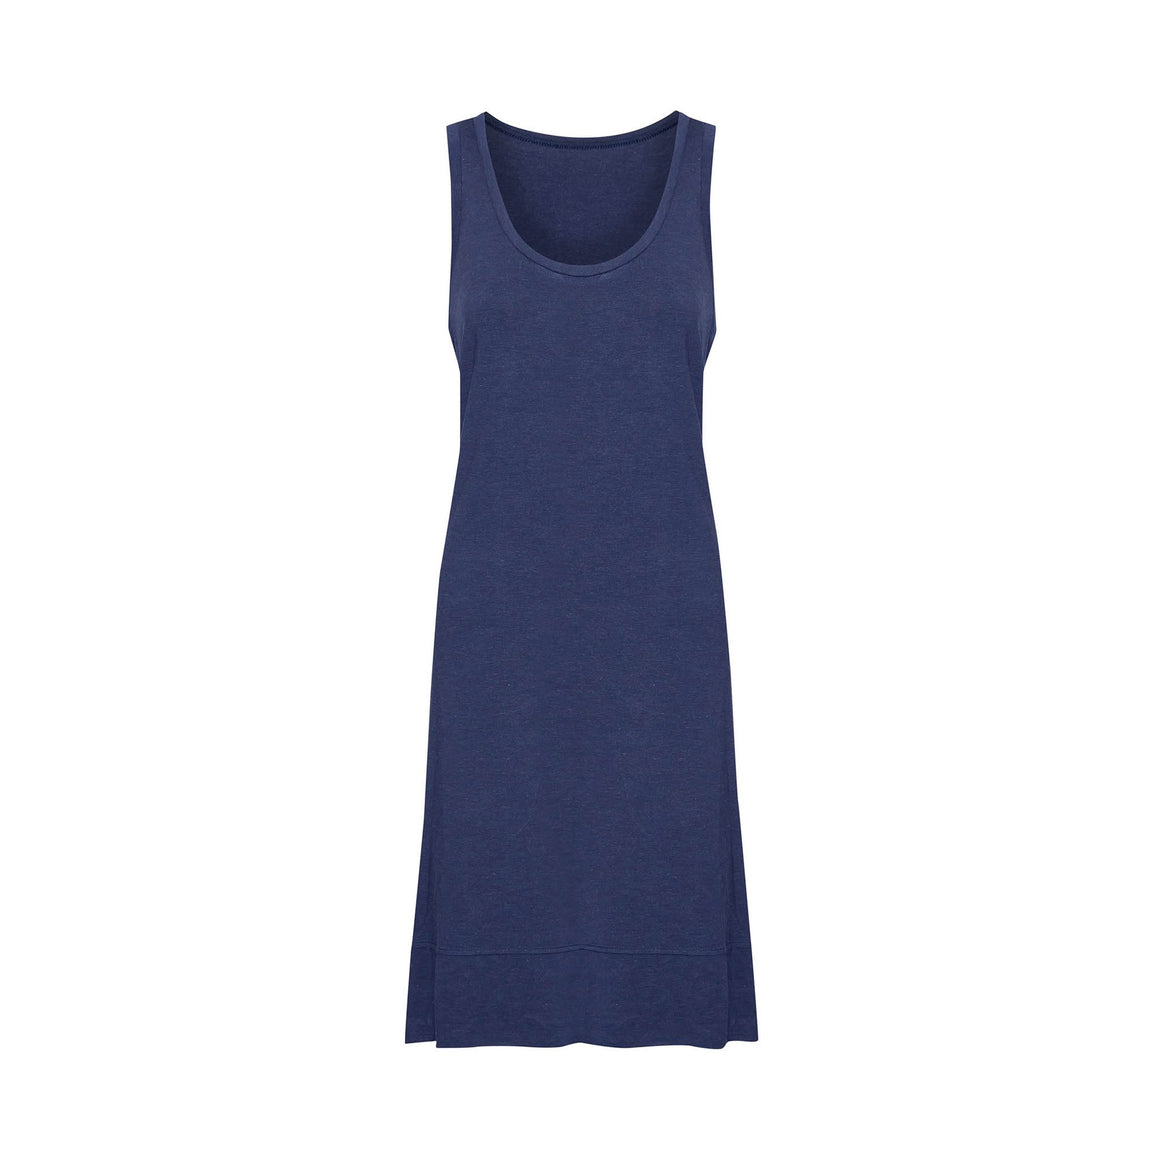 The Ella Tank Dress - Indigo Marle